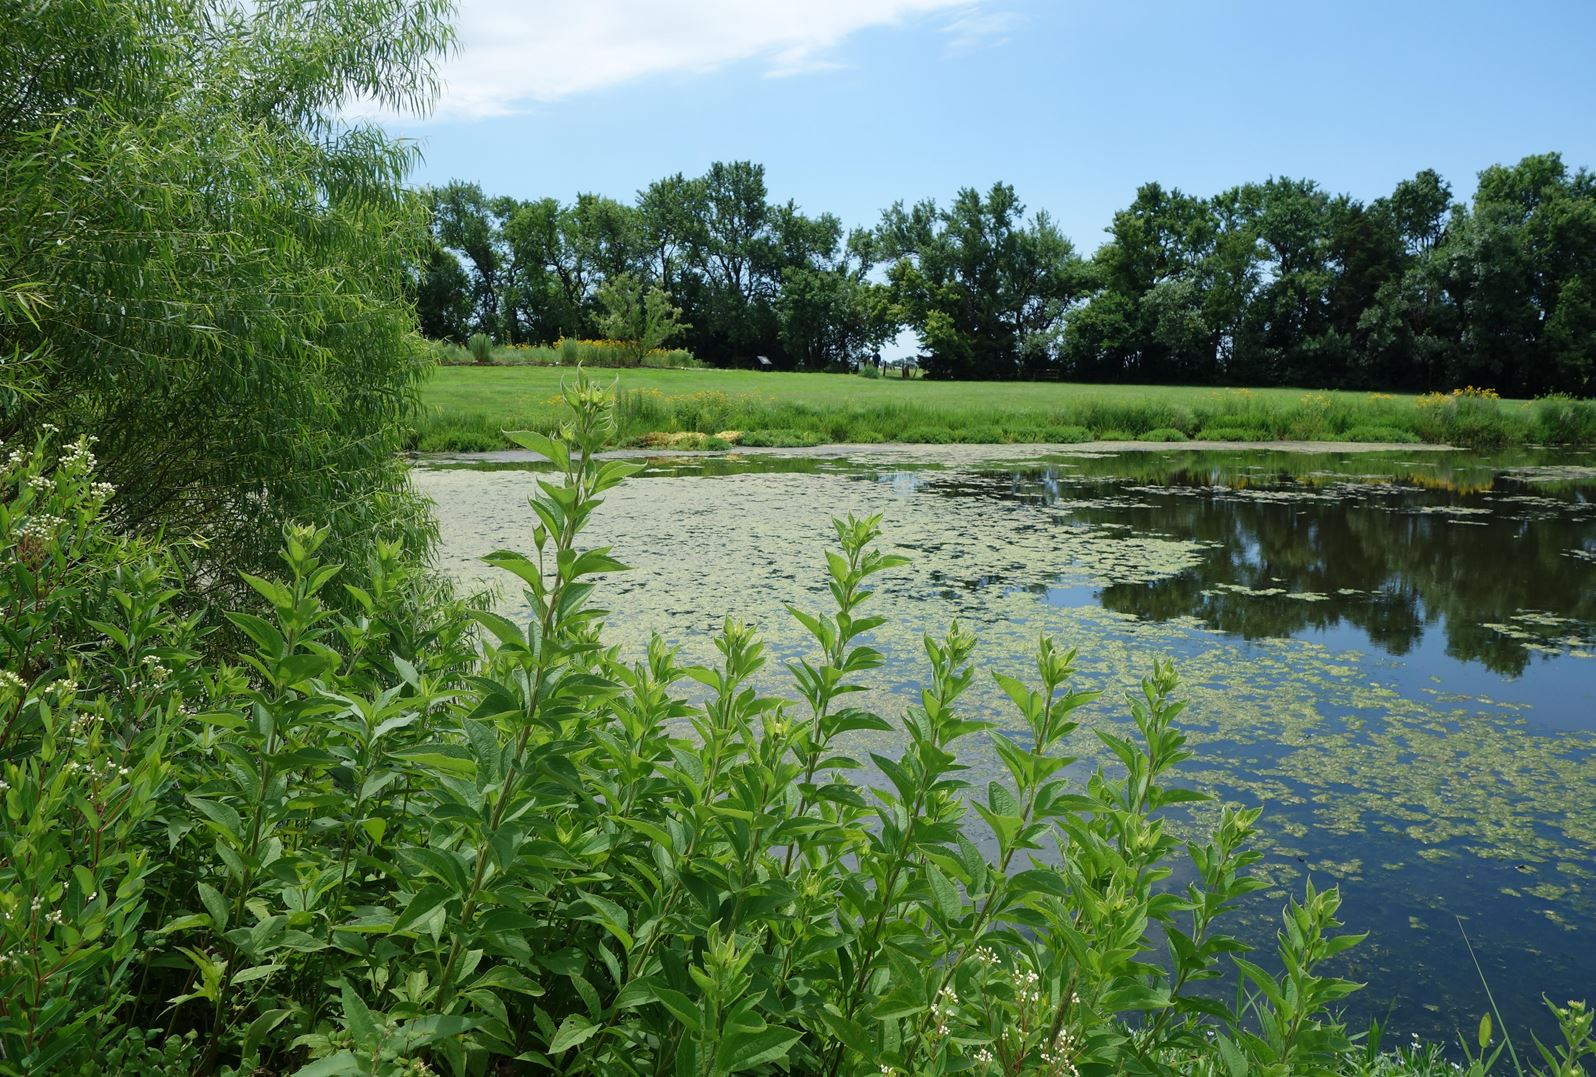 A view of the dense plant-life that surrounds the pond at the Dyck Arboretum of the Plains in Hesston, Kansas.